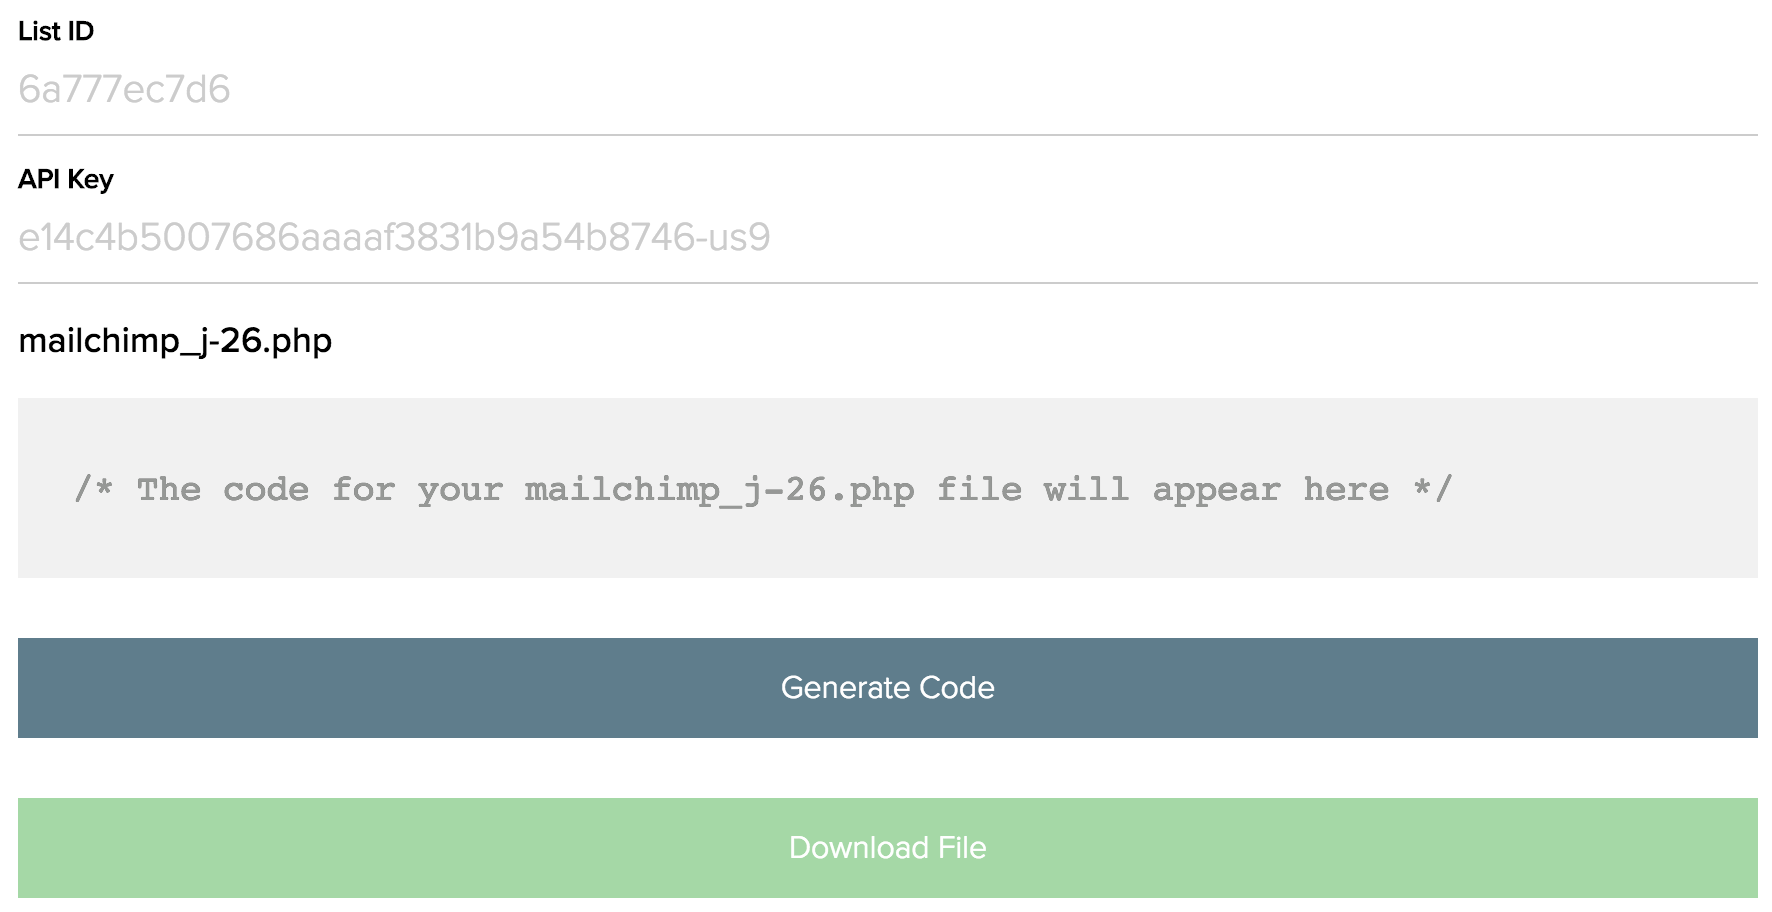 View of the mailchimp_j-26.php file generator